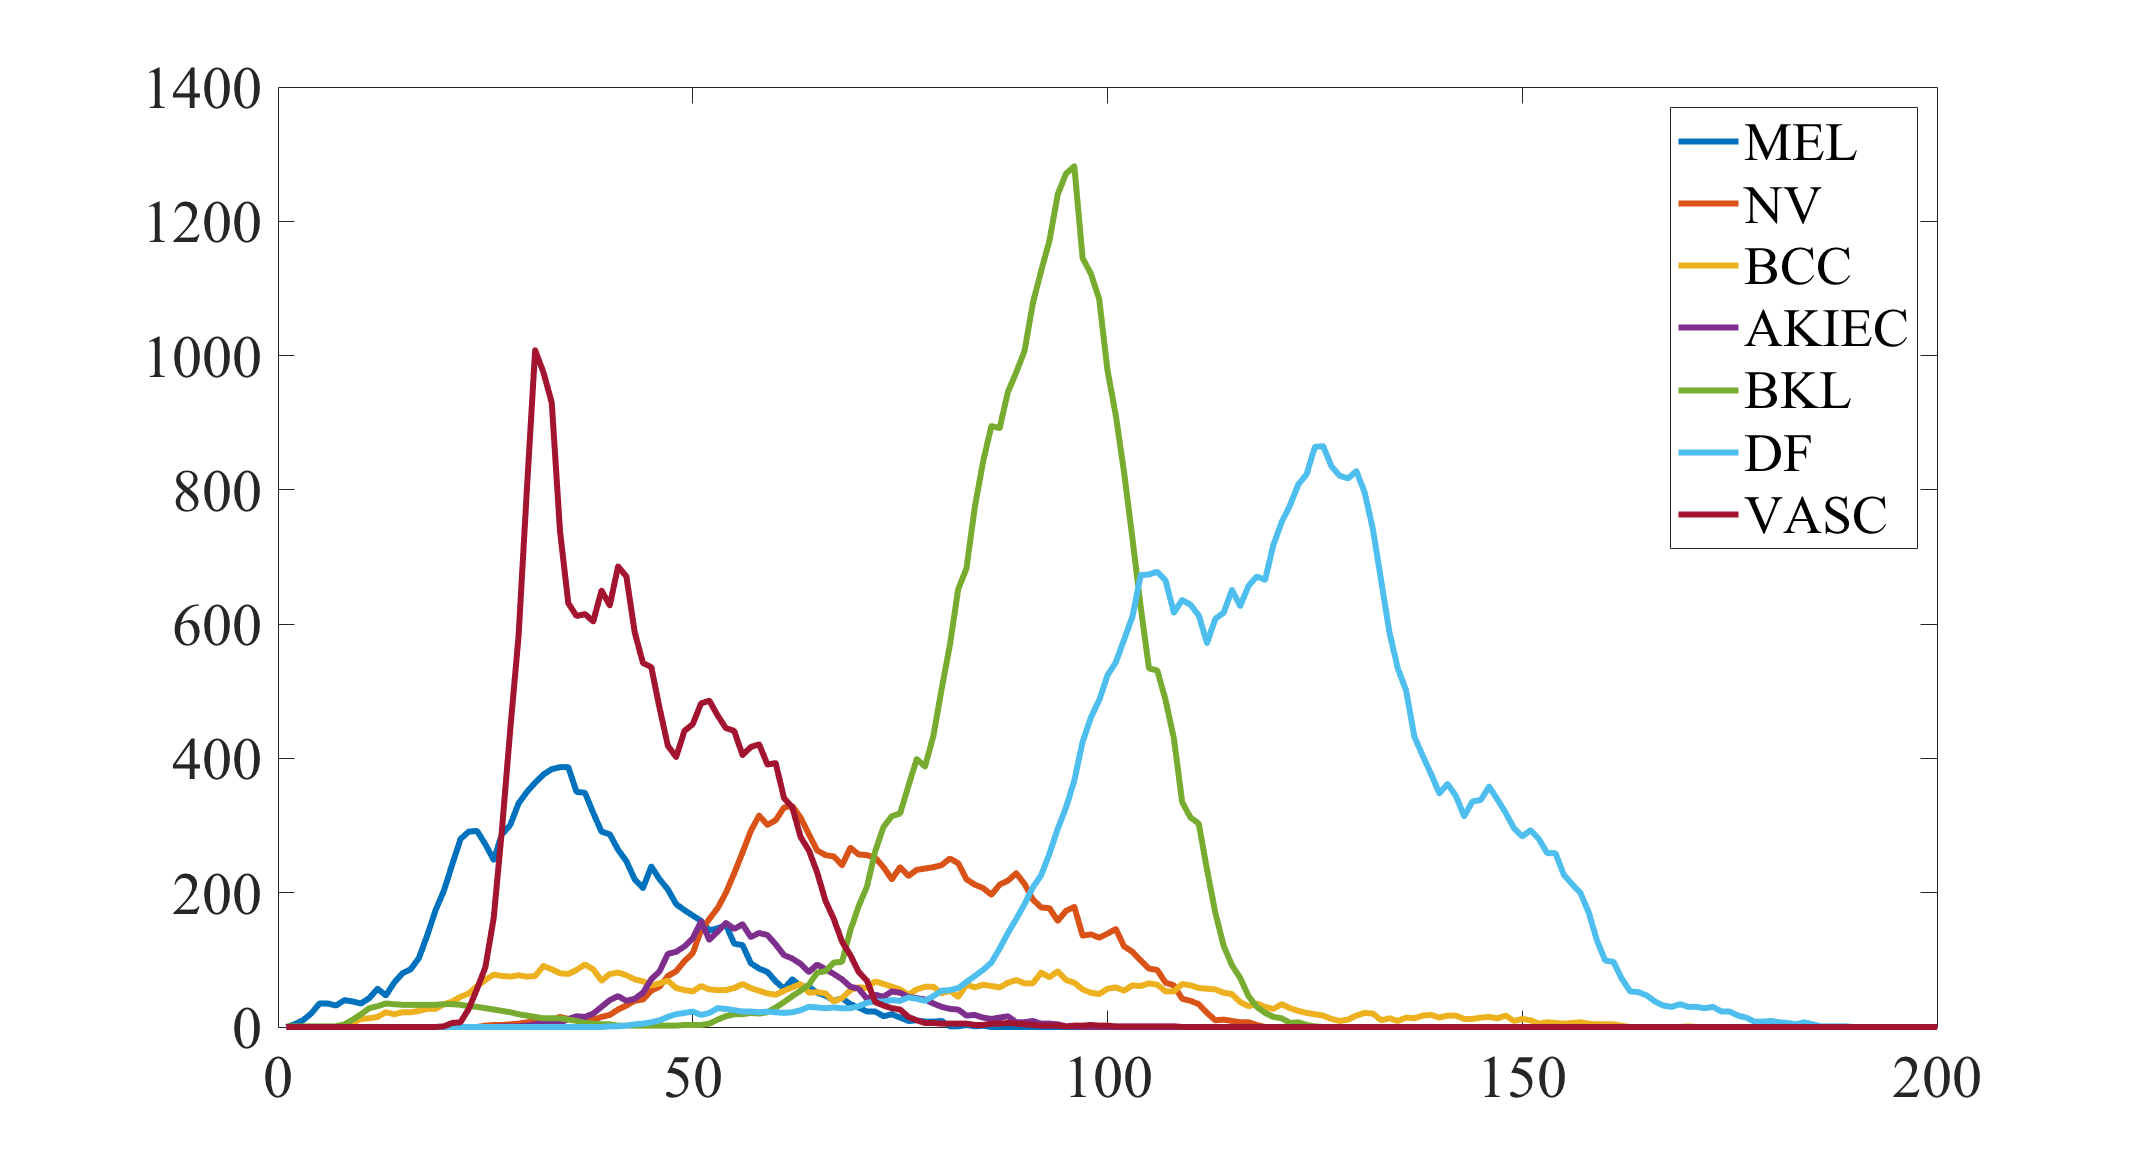 Sample P.Cs from X channel of XYZ color space of images in Fig.